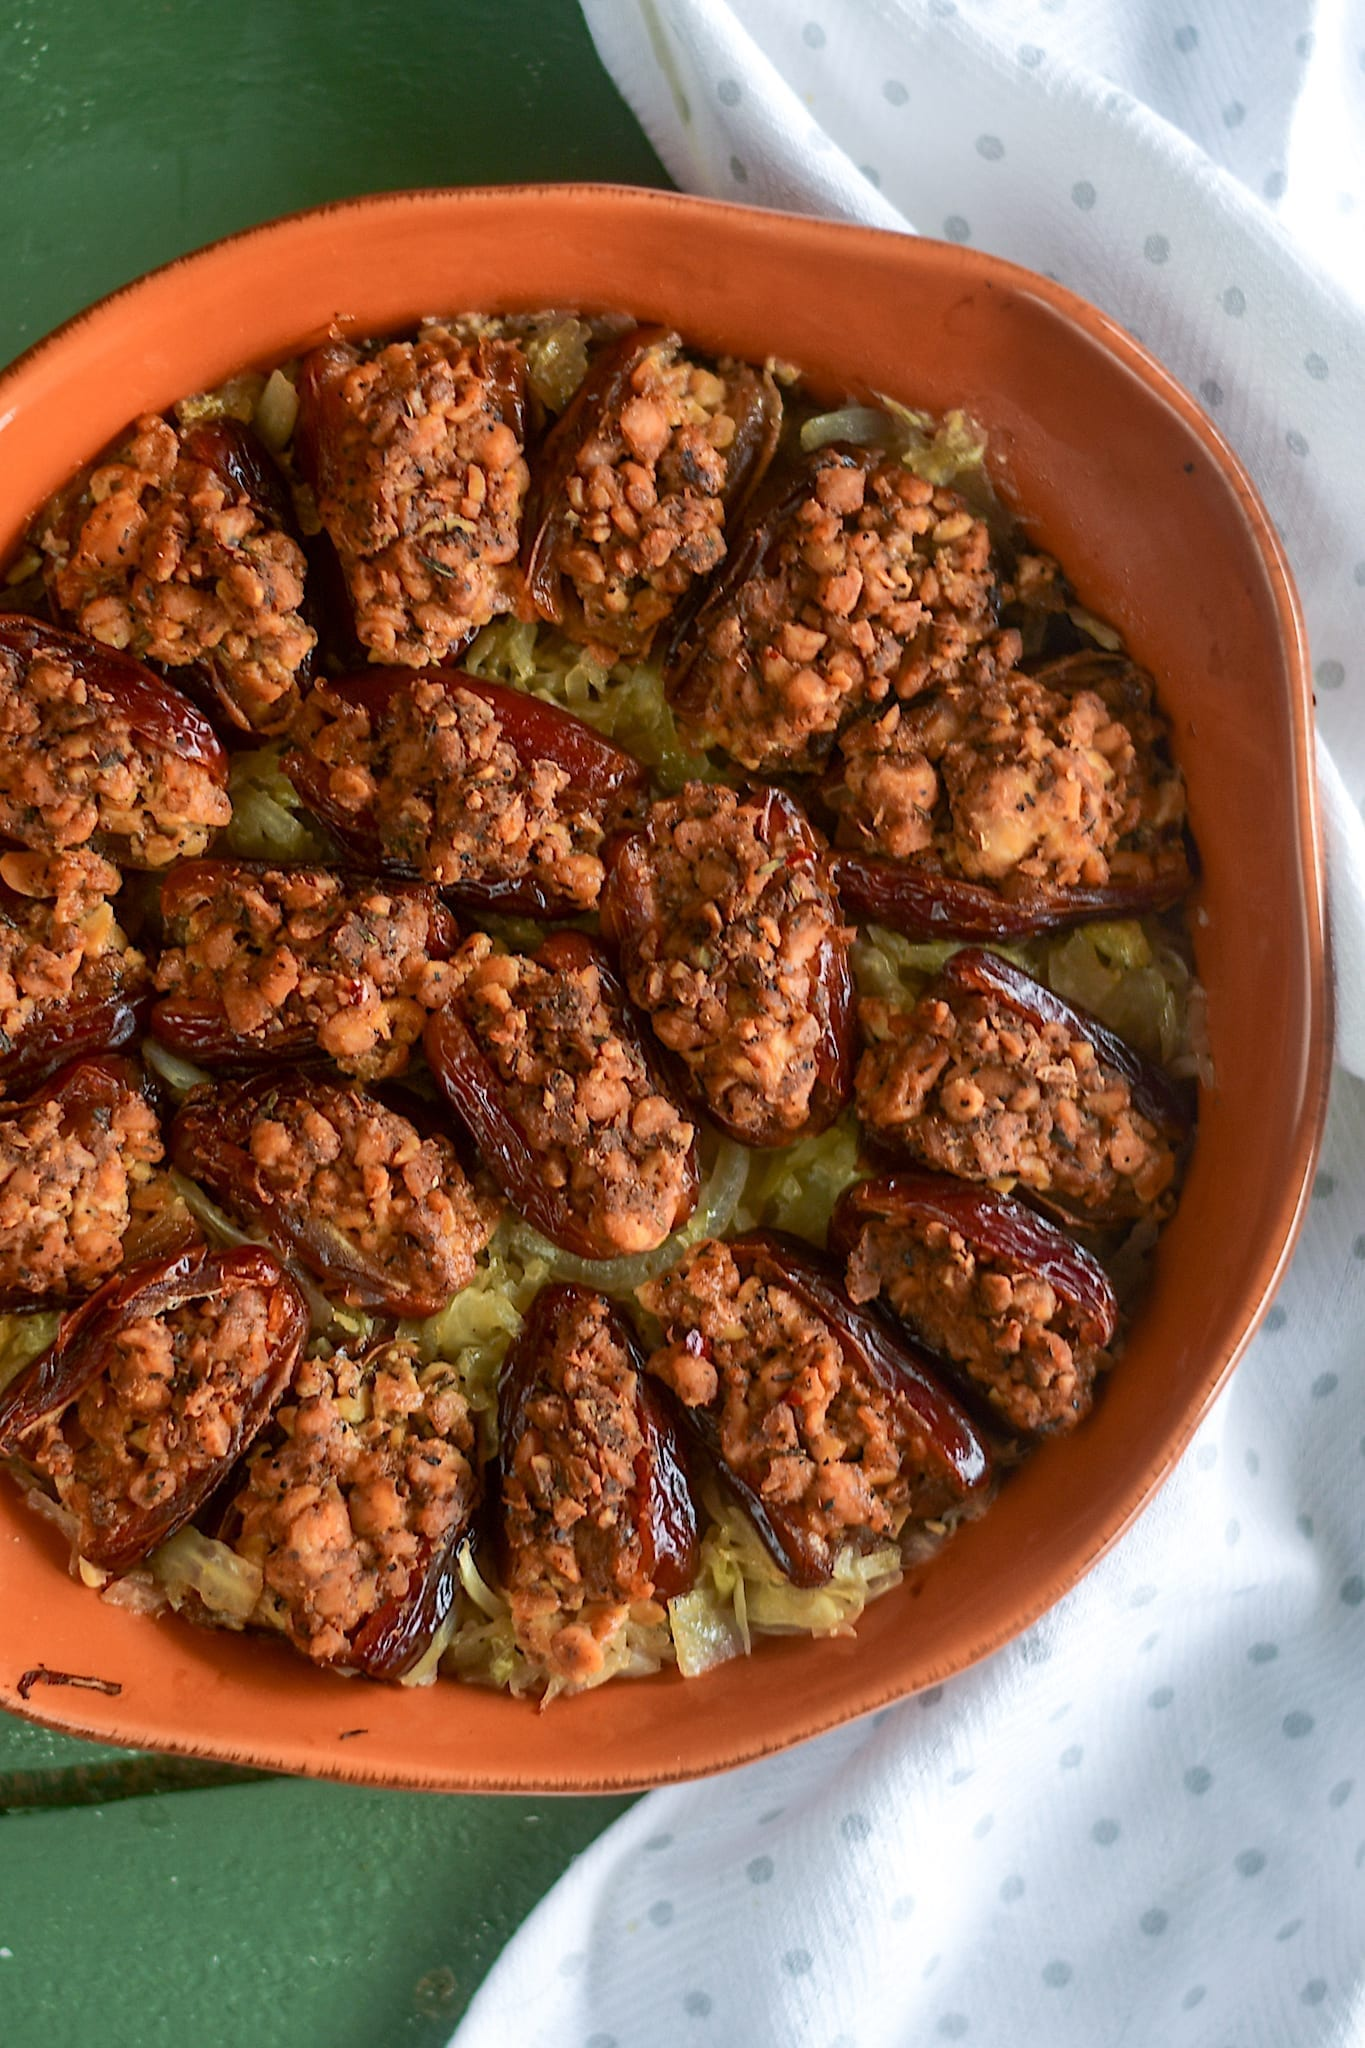 Vegan Holiday Recipes, Sausage Stuffed Dates